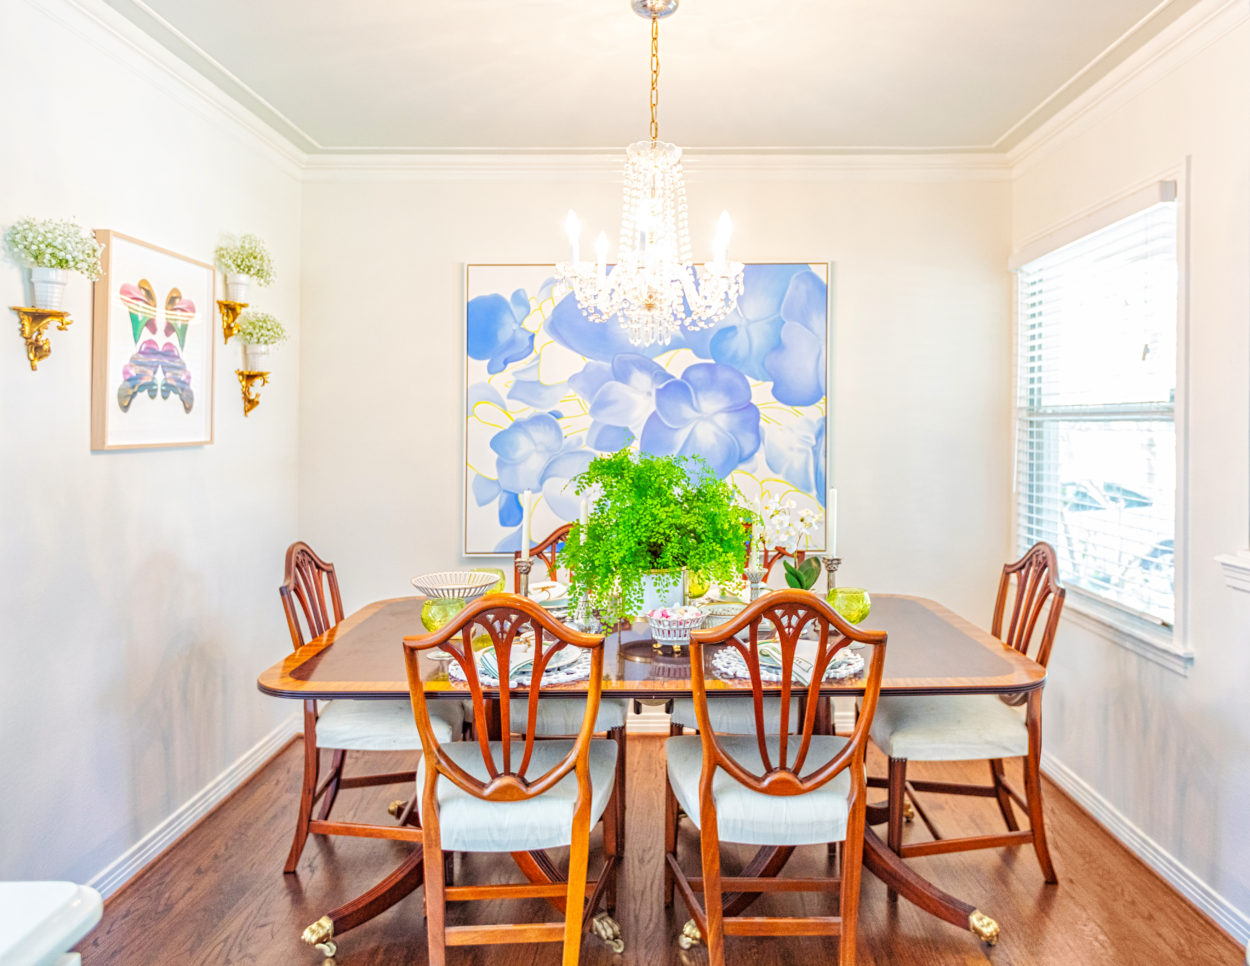 Susie Kwiatkowski's dining area with a blend of antiques and floral oil paintings.